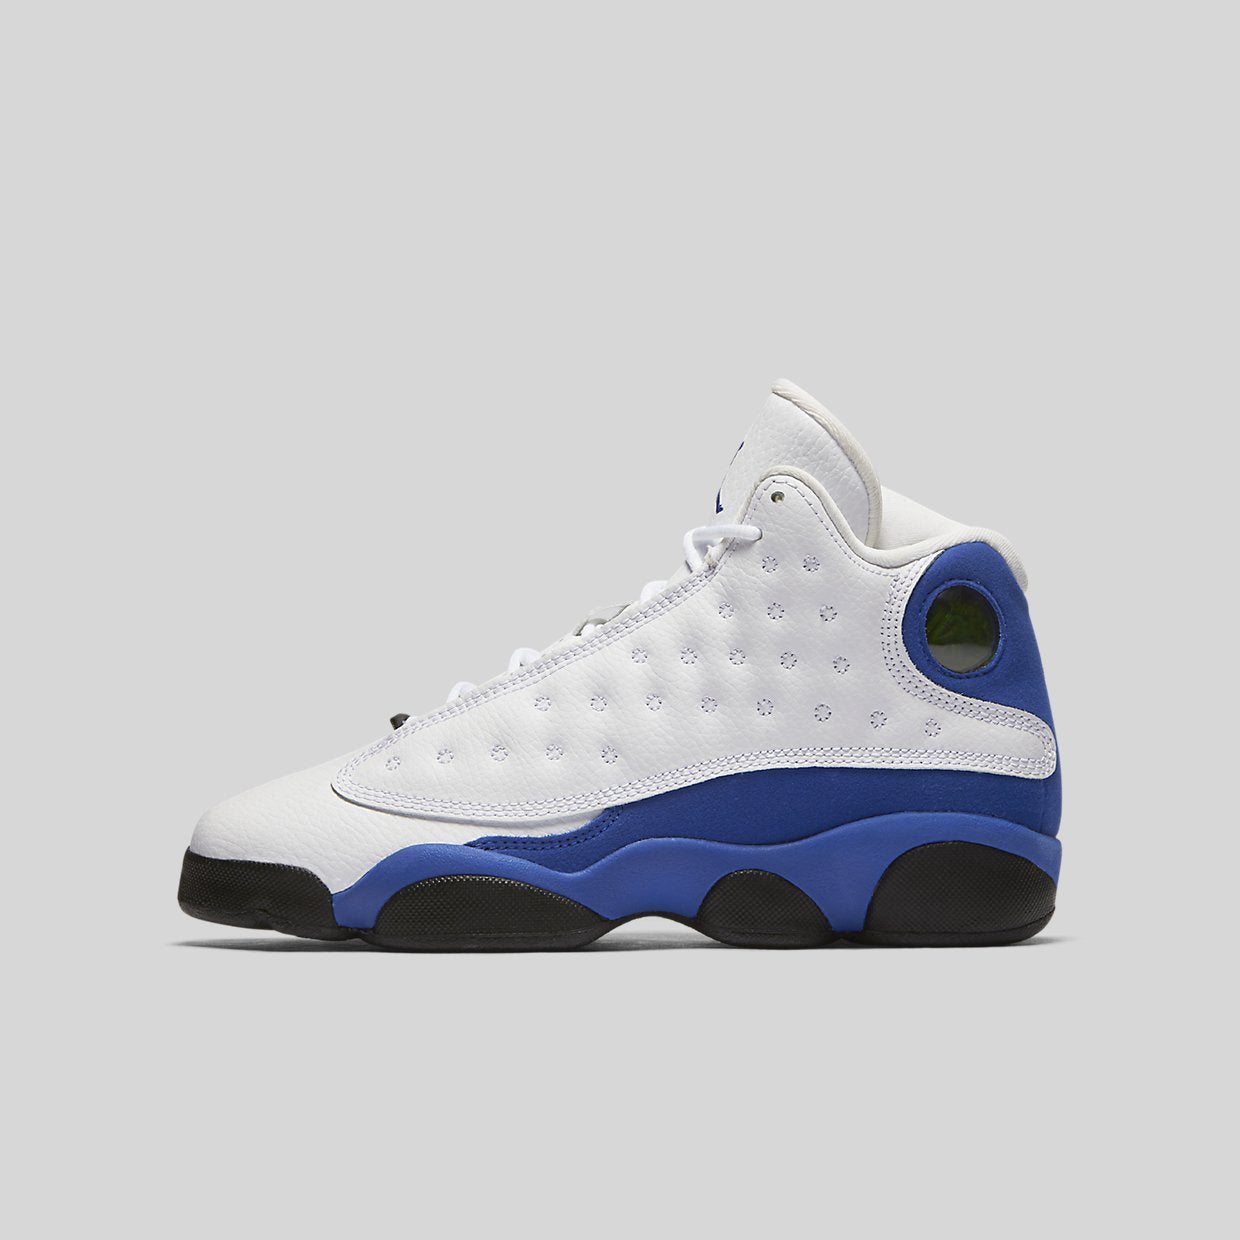 competitive price 17adc e1927 Nike AIR JORDAN 13 RETRO BG white hyper royal-black